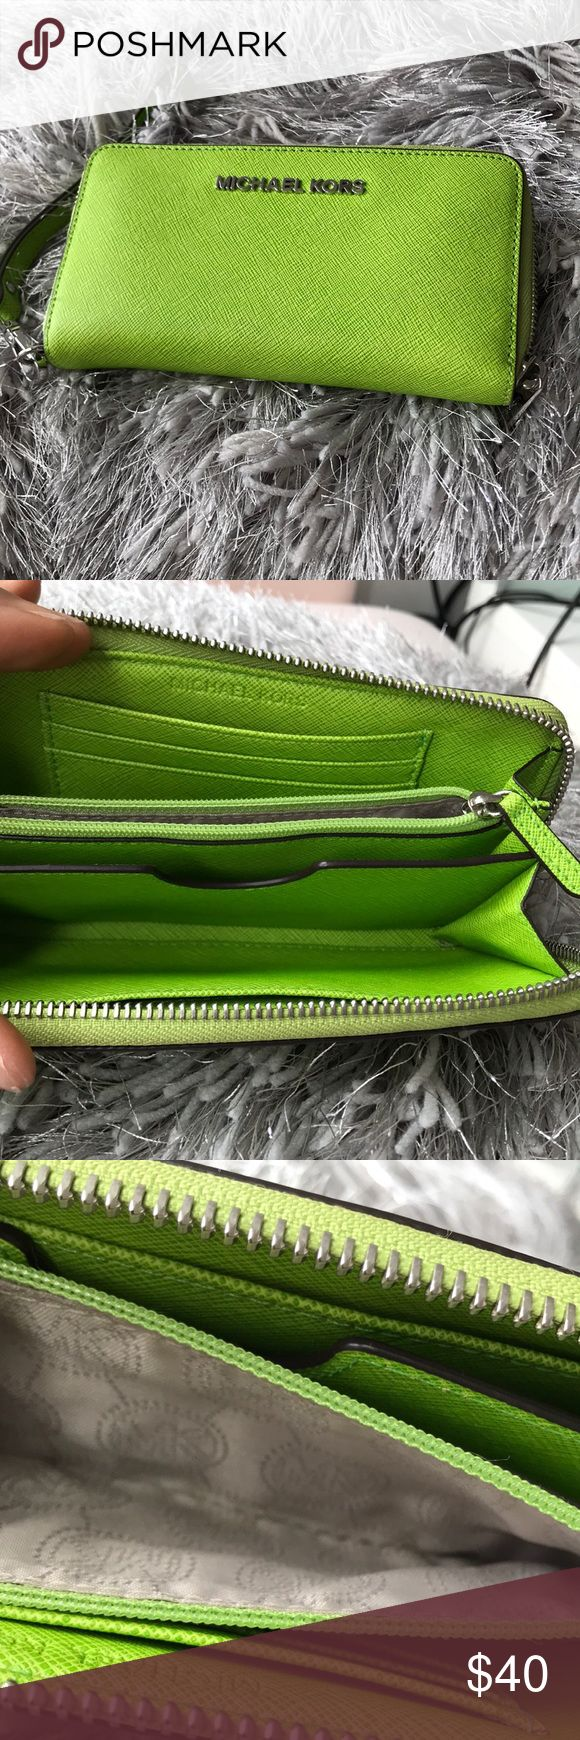 Michael Kors Wallet Wristlet I am selling a Michael kors wallet in good condition. Includes space for cash, credit cards and change. Light scratches on wallet see pictures. Michael Kors Bags Clutches & Wristlets